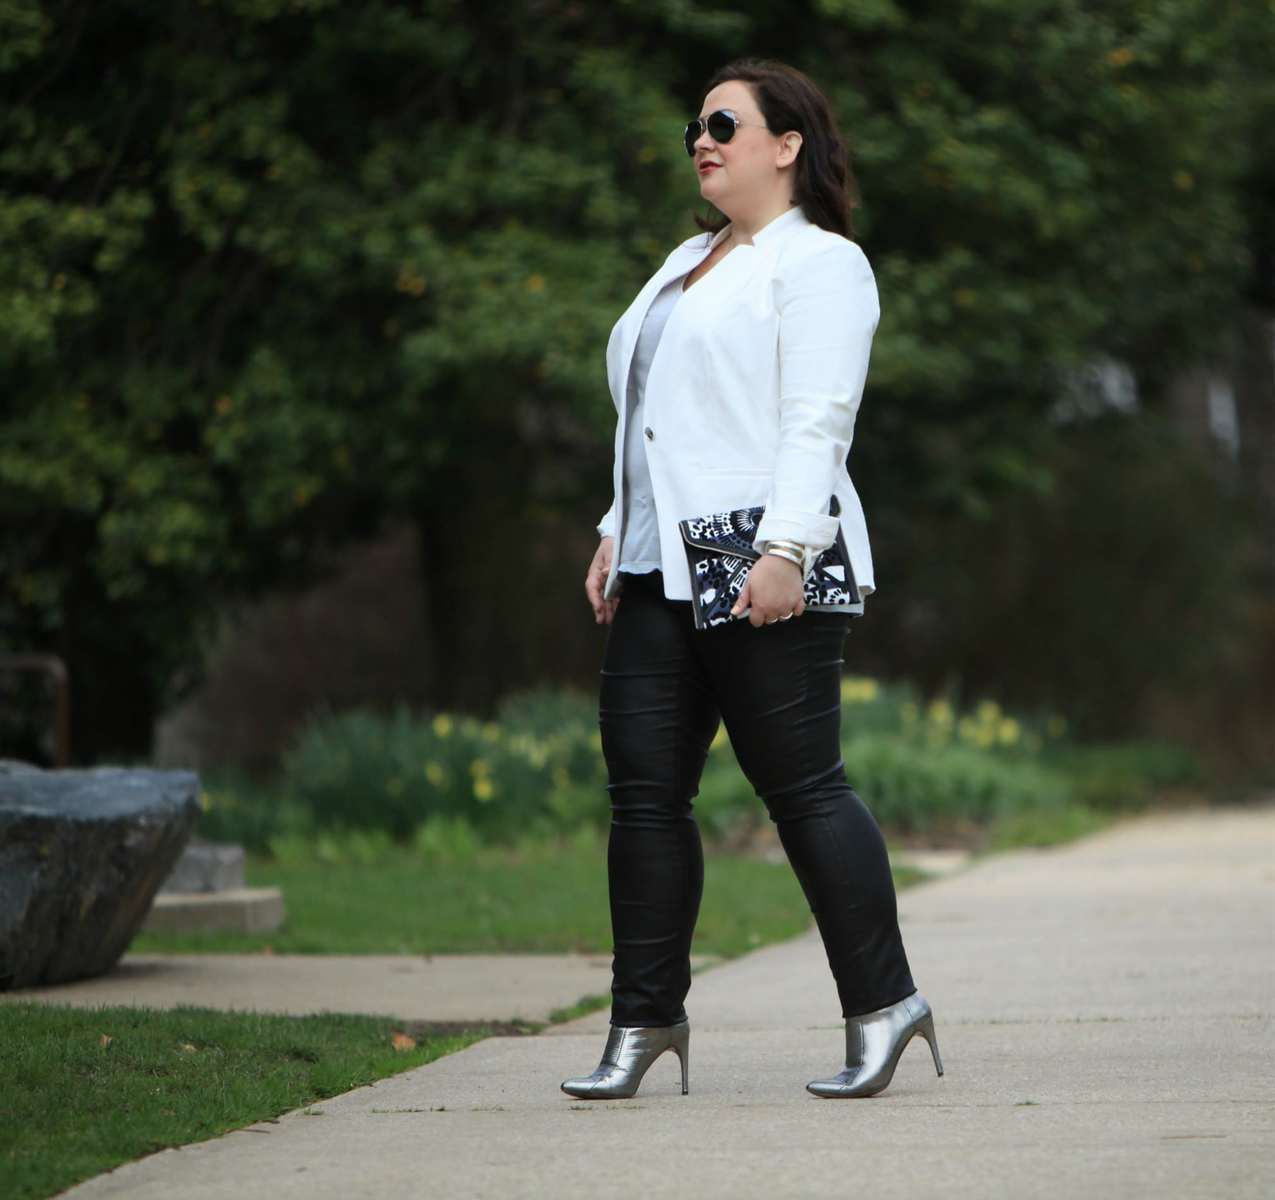 Wardrobe Oxygen in a Vince Camuto blazer, Junarose coated jeans from Dia&Co, silver BCBG ankle booties, and a Rebecca Minkoff clutch